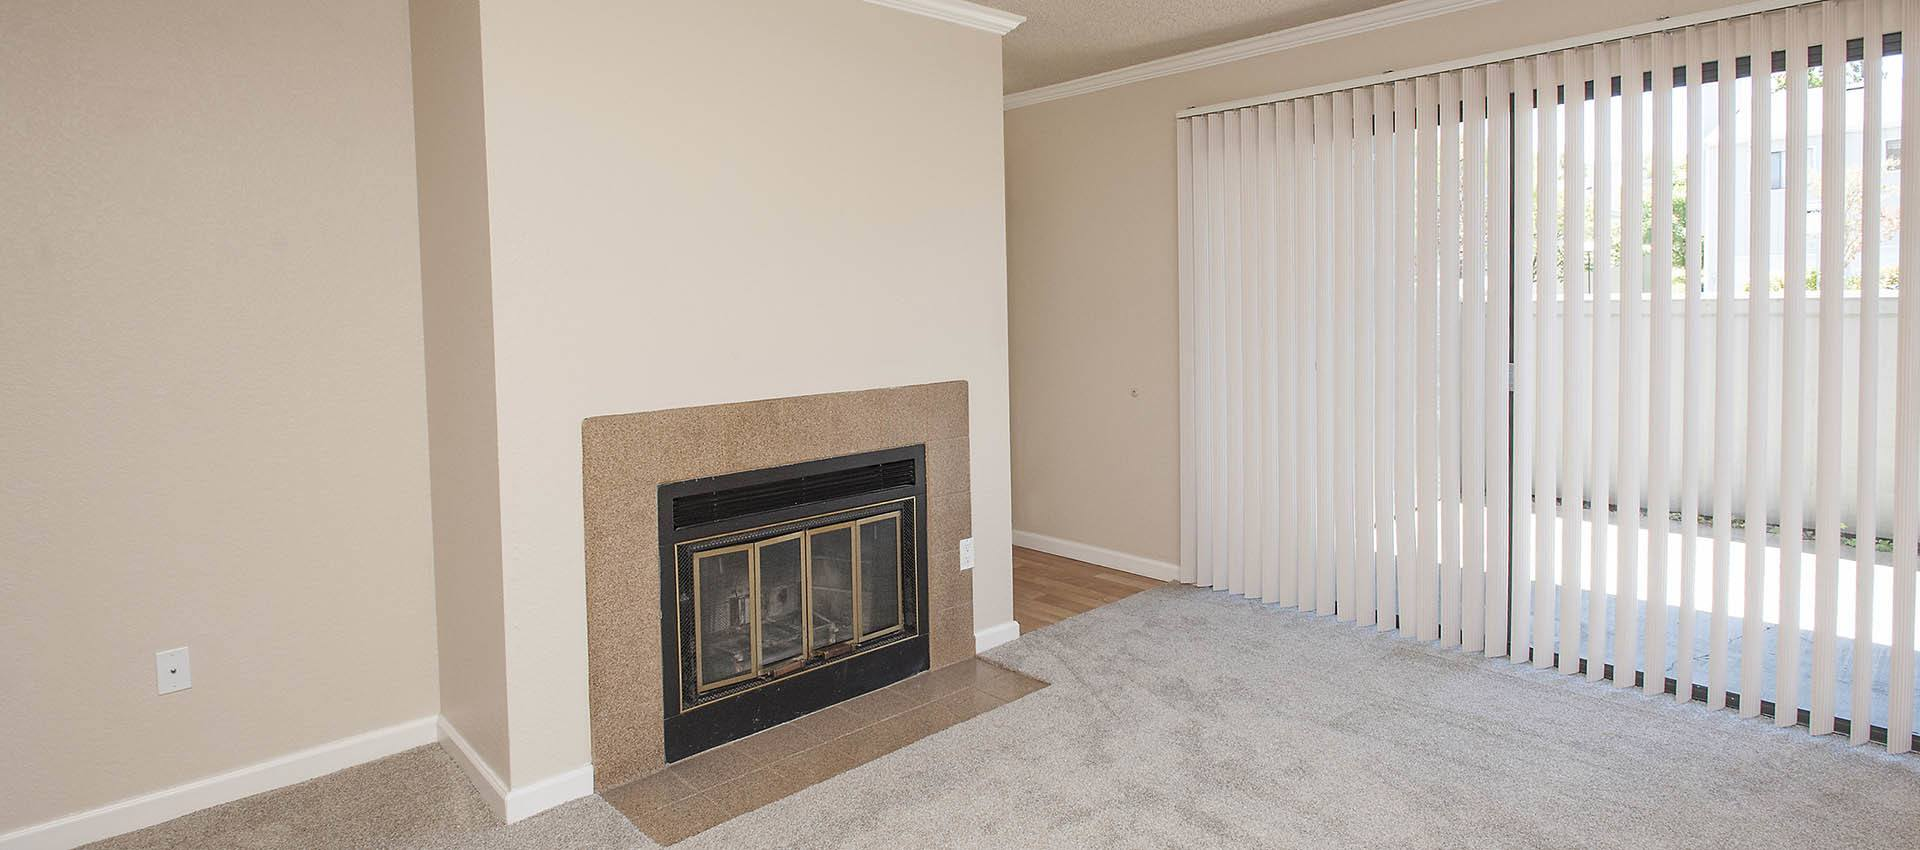 Fireplace In Living Room at Plum Tree Apartment Homes in Martinez, CA